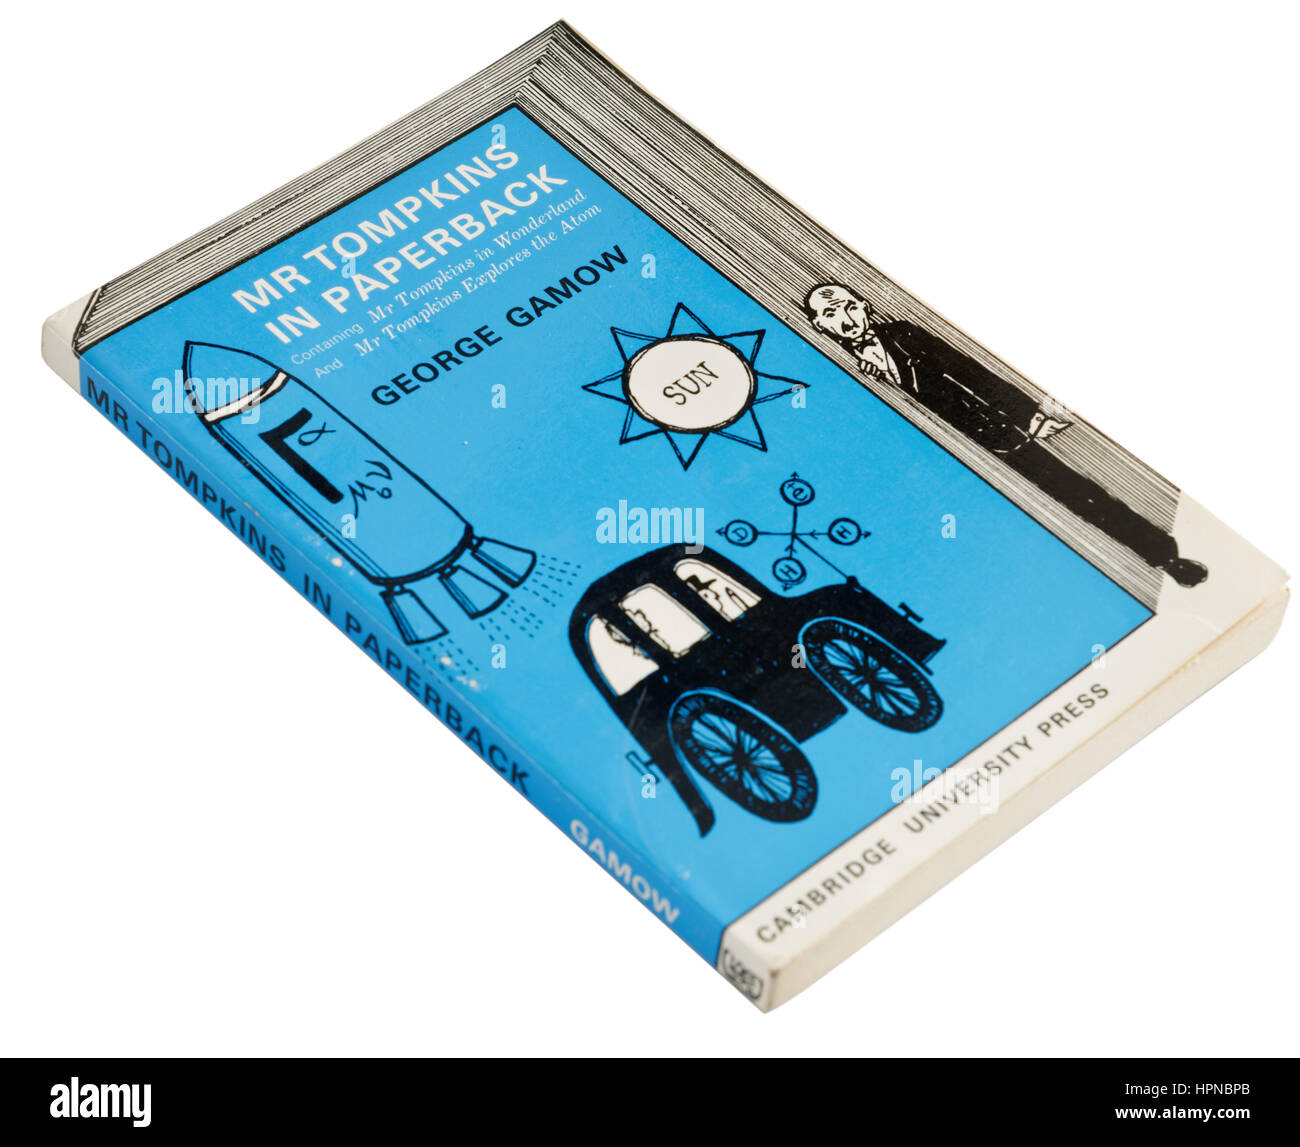 Mr Tompkins in paperback, which includes Mr Tompkins in Wonderland, a book on Particle Physics and Quantum Theory - Stock Image